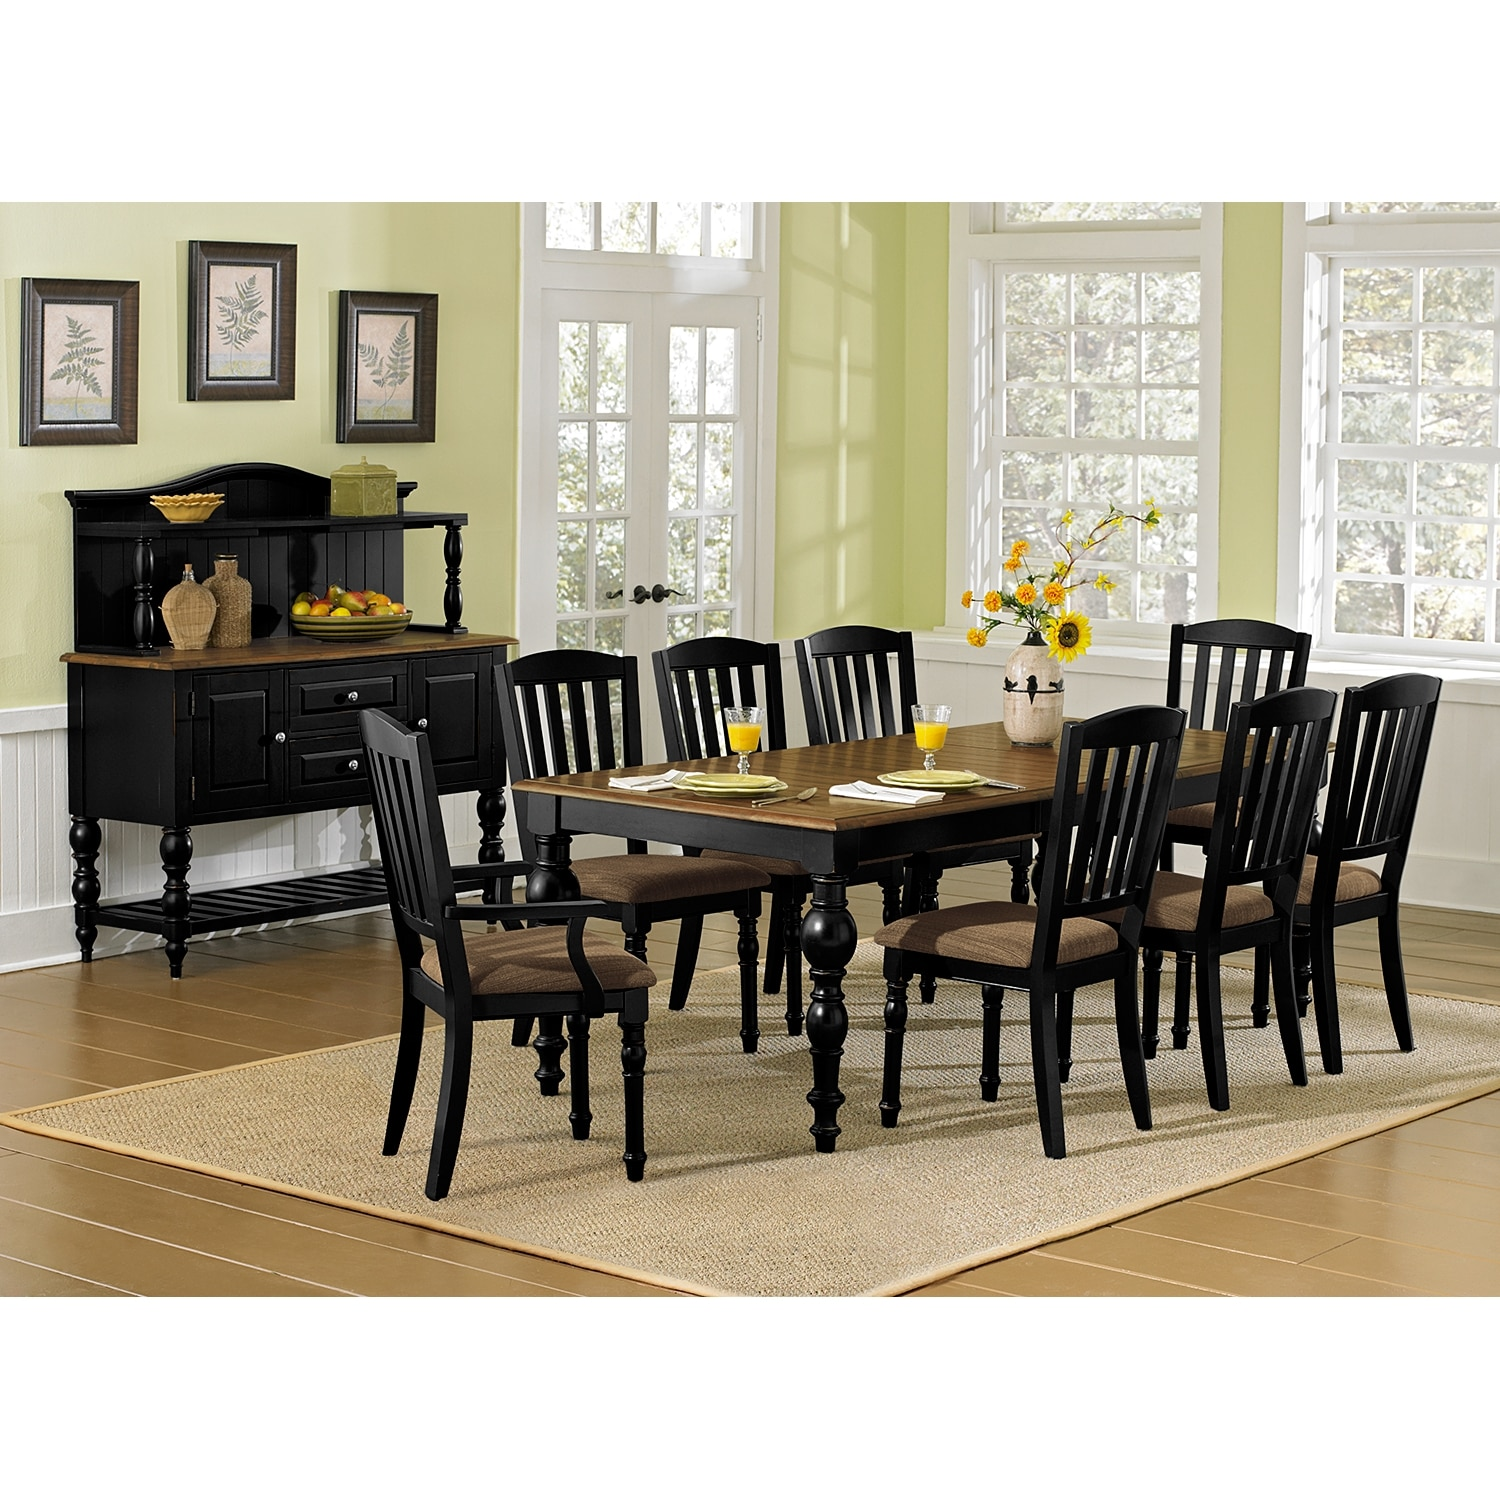 Castleton dining room arm chair value city furniture for Dining room value city furniture